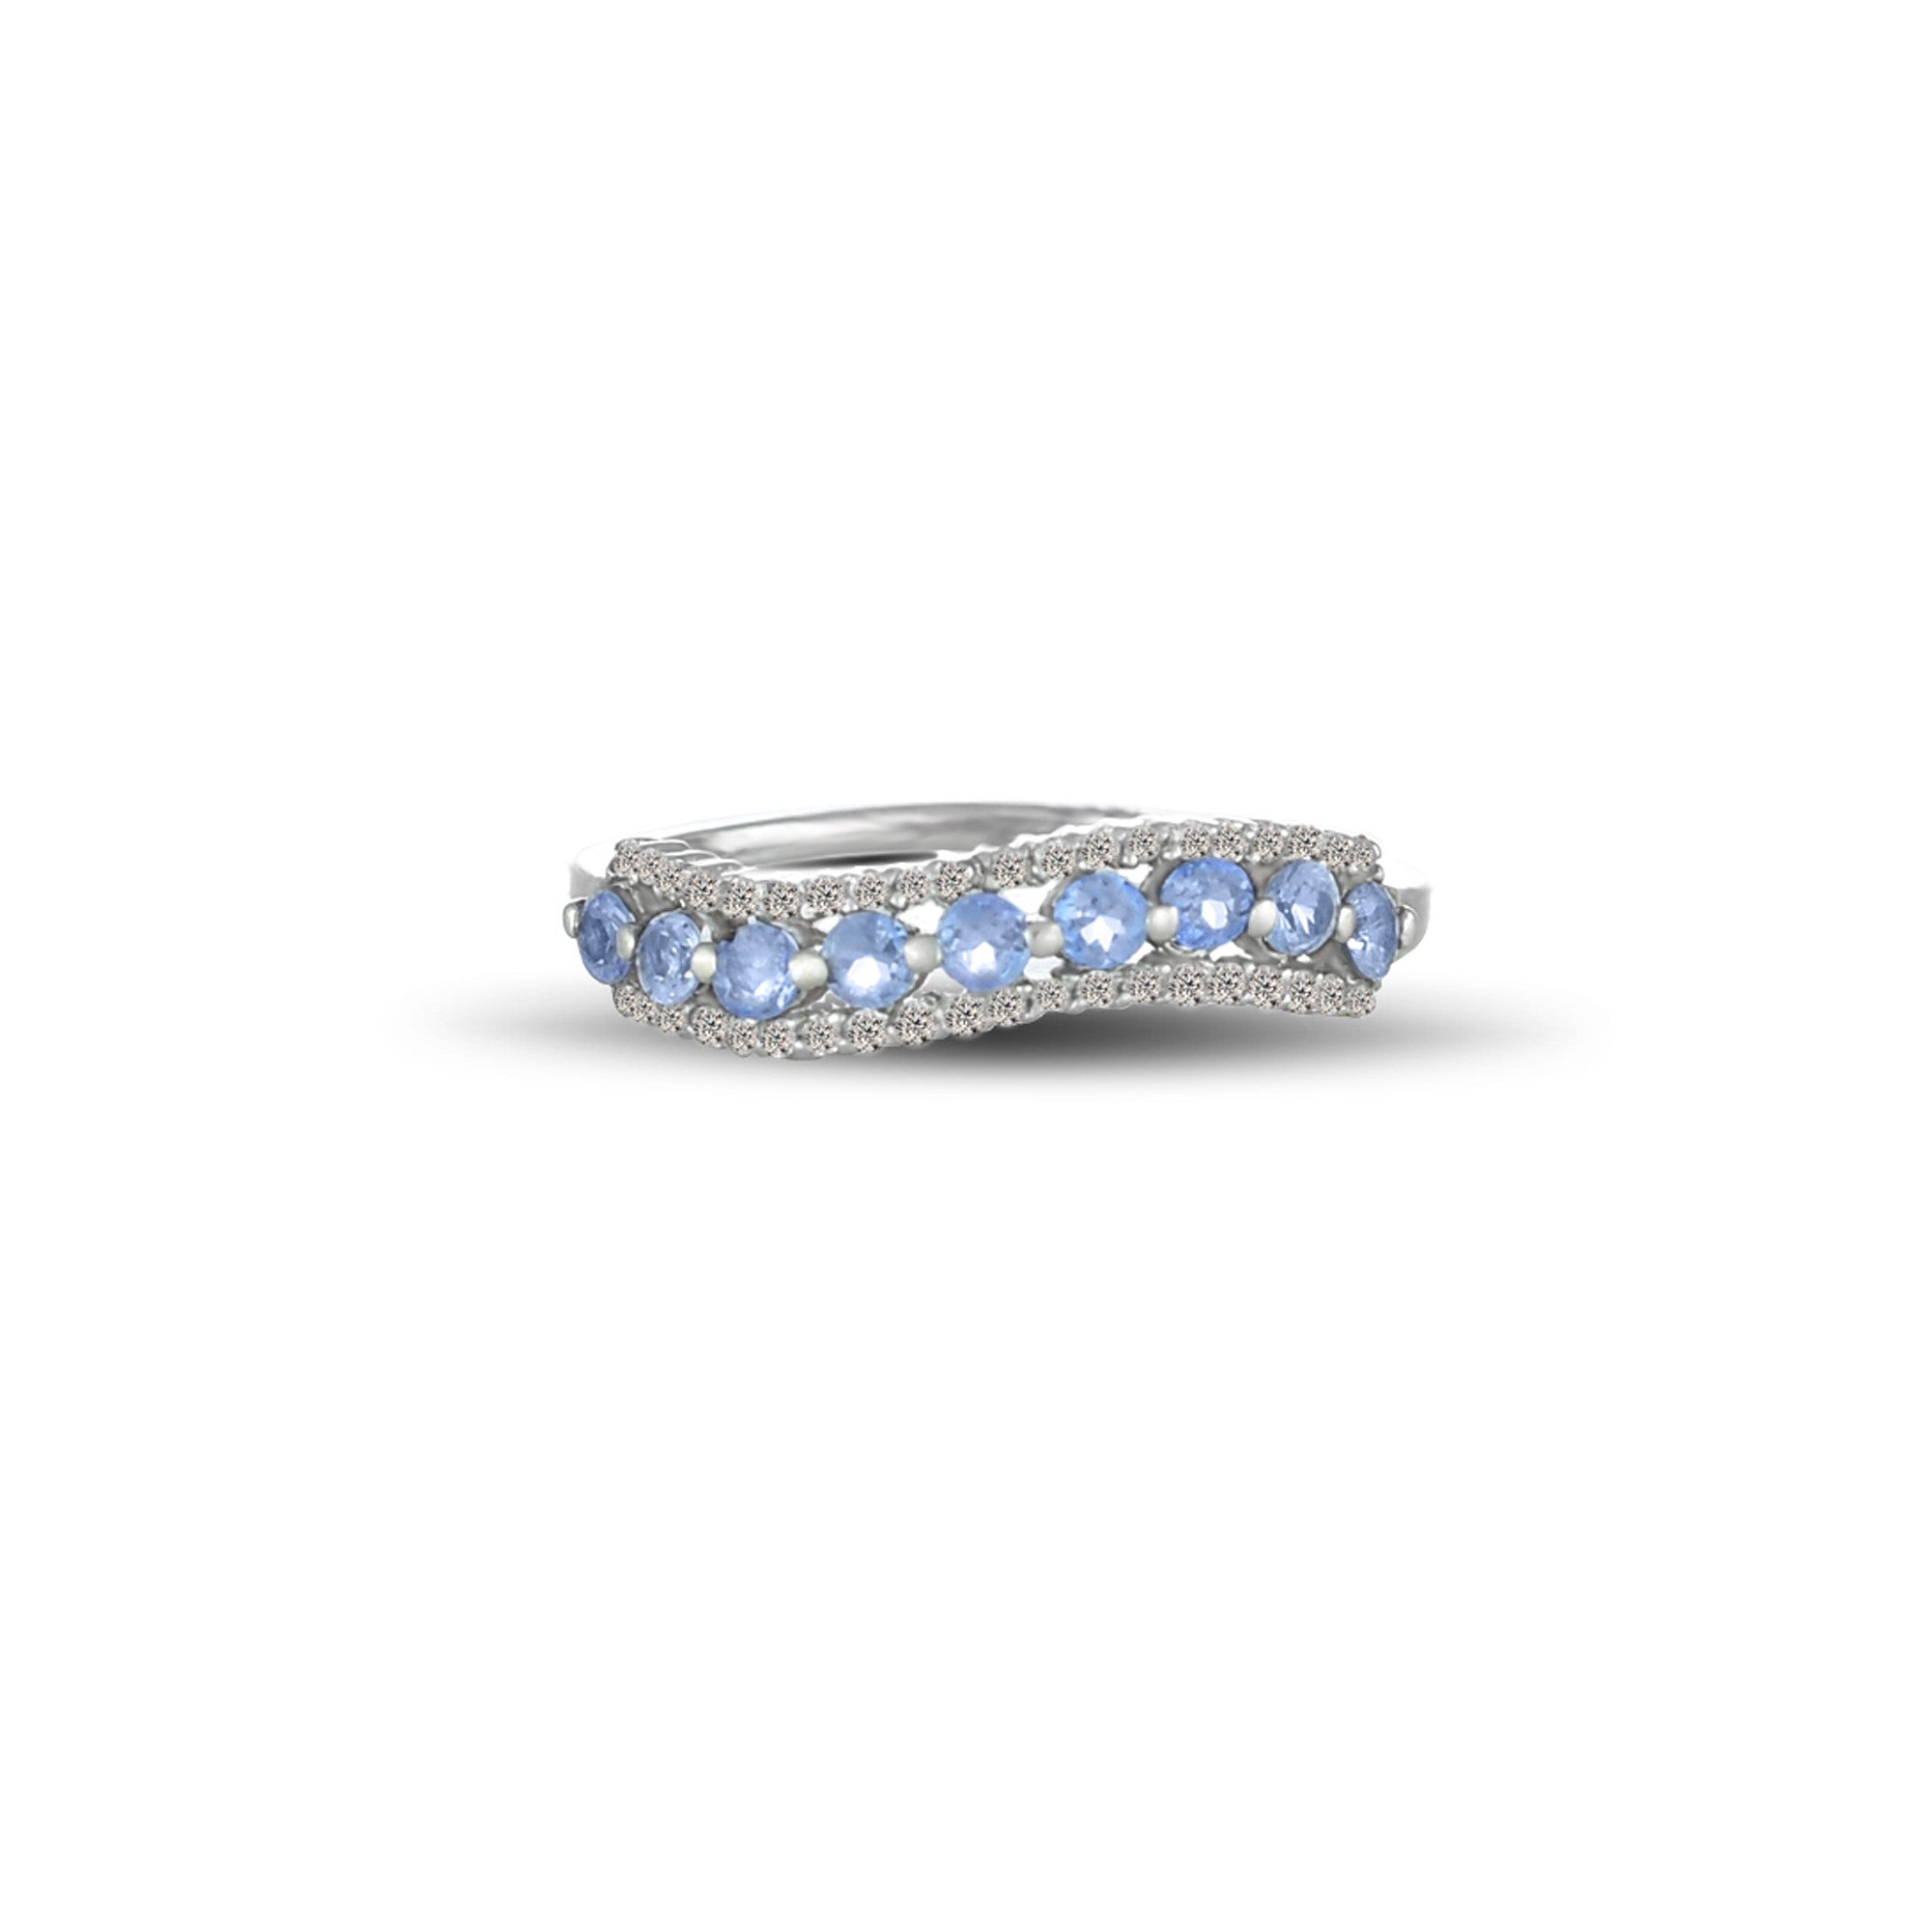 weddingplanning on your accents and diamond add small e show sapphire this so accent see t can two band sparkle ring you they tiny them comments with wedding picture engagement us rings but r